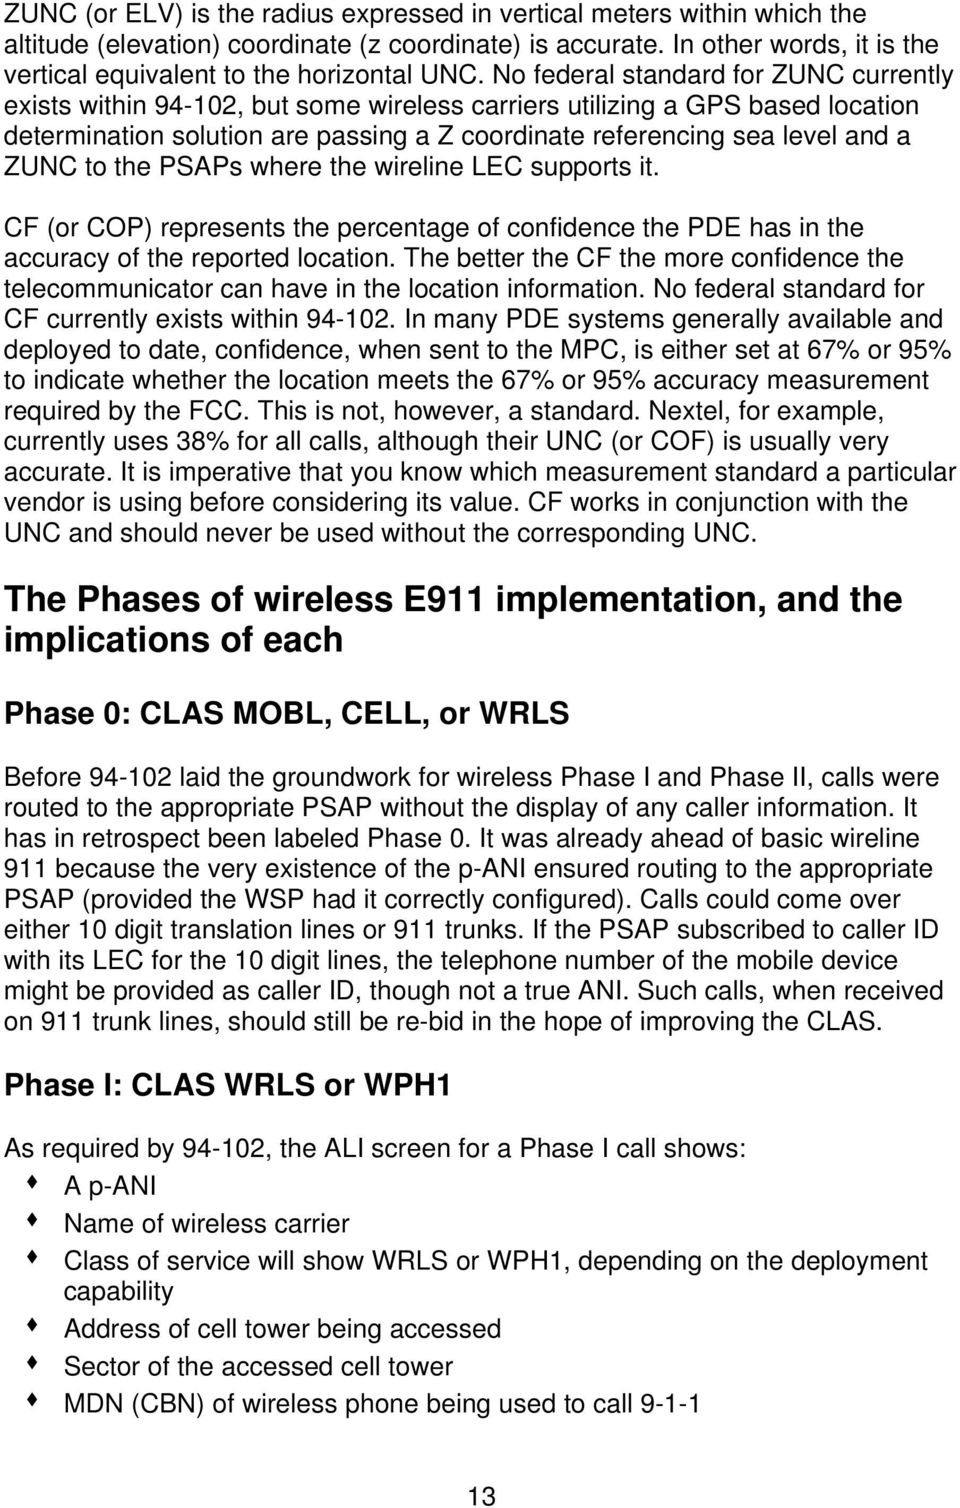 No federal standard for ZUNC currently exists within 94-102, but some wireless carriers utilizing a GPS based location determination solution are passing a Z coordinate referencing sea level and a